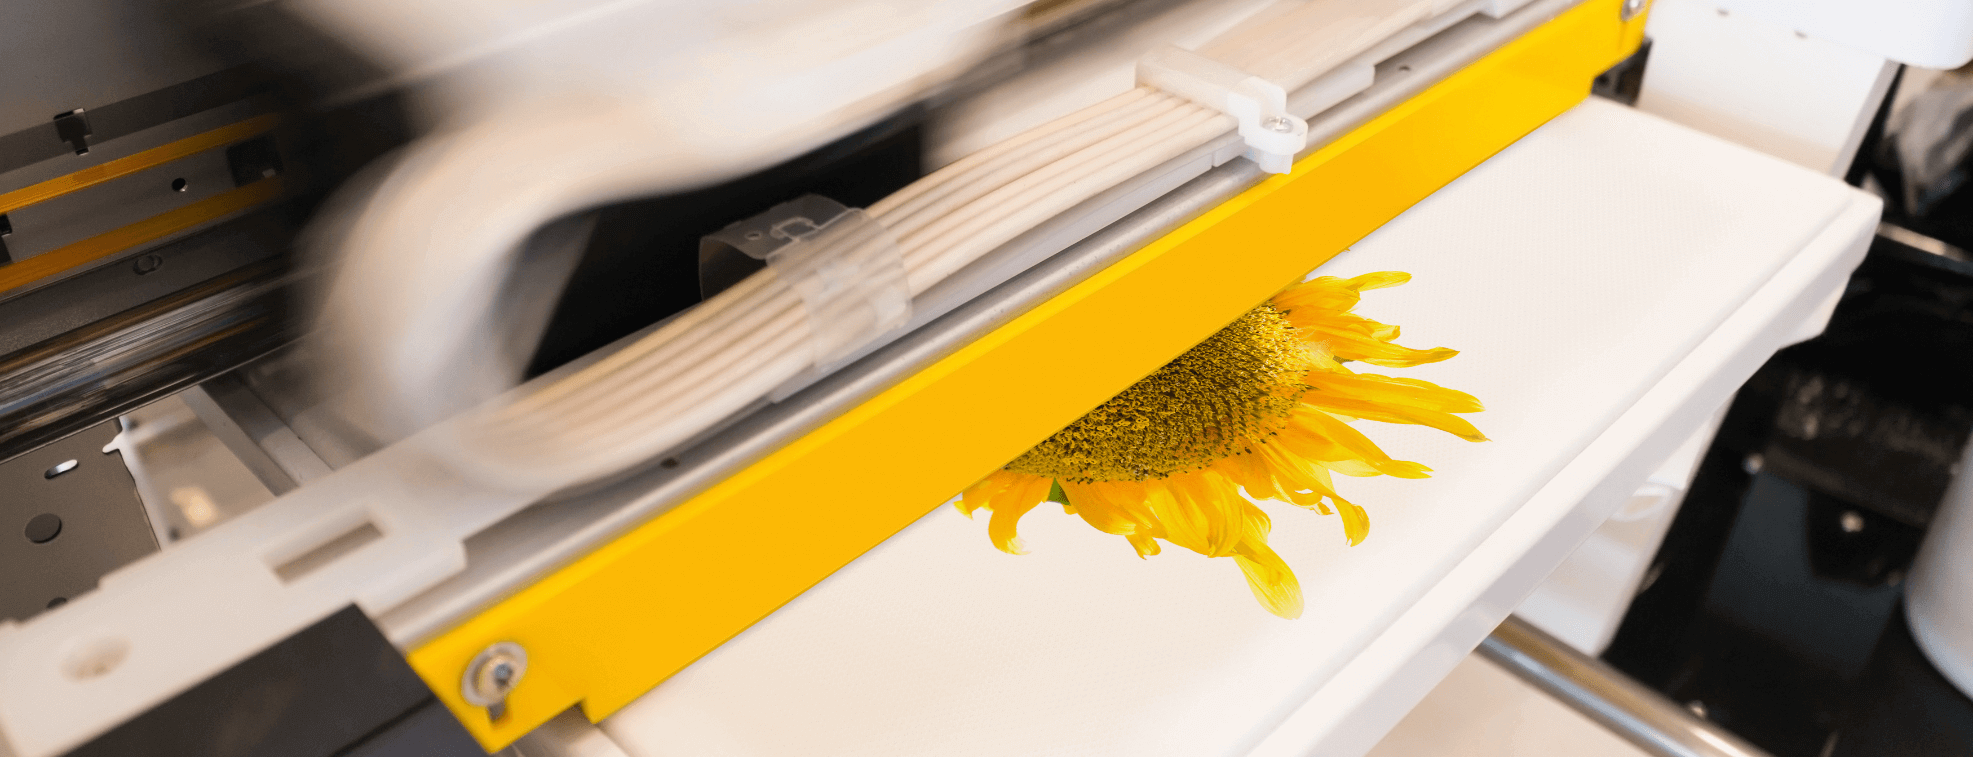 Using digital textile printing to print sunflower on a cotton material